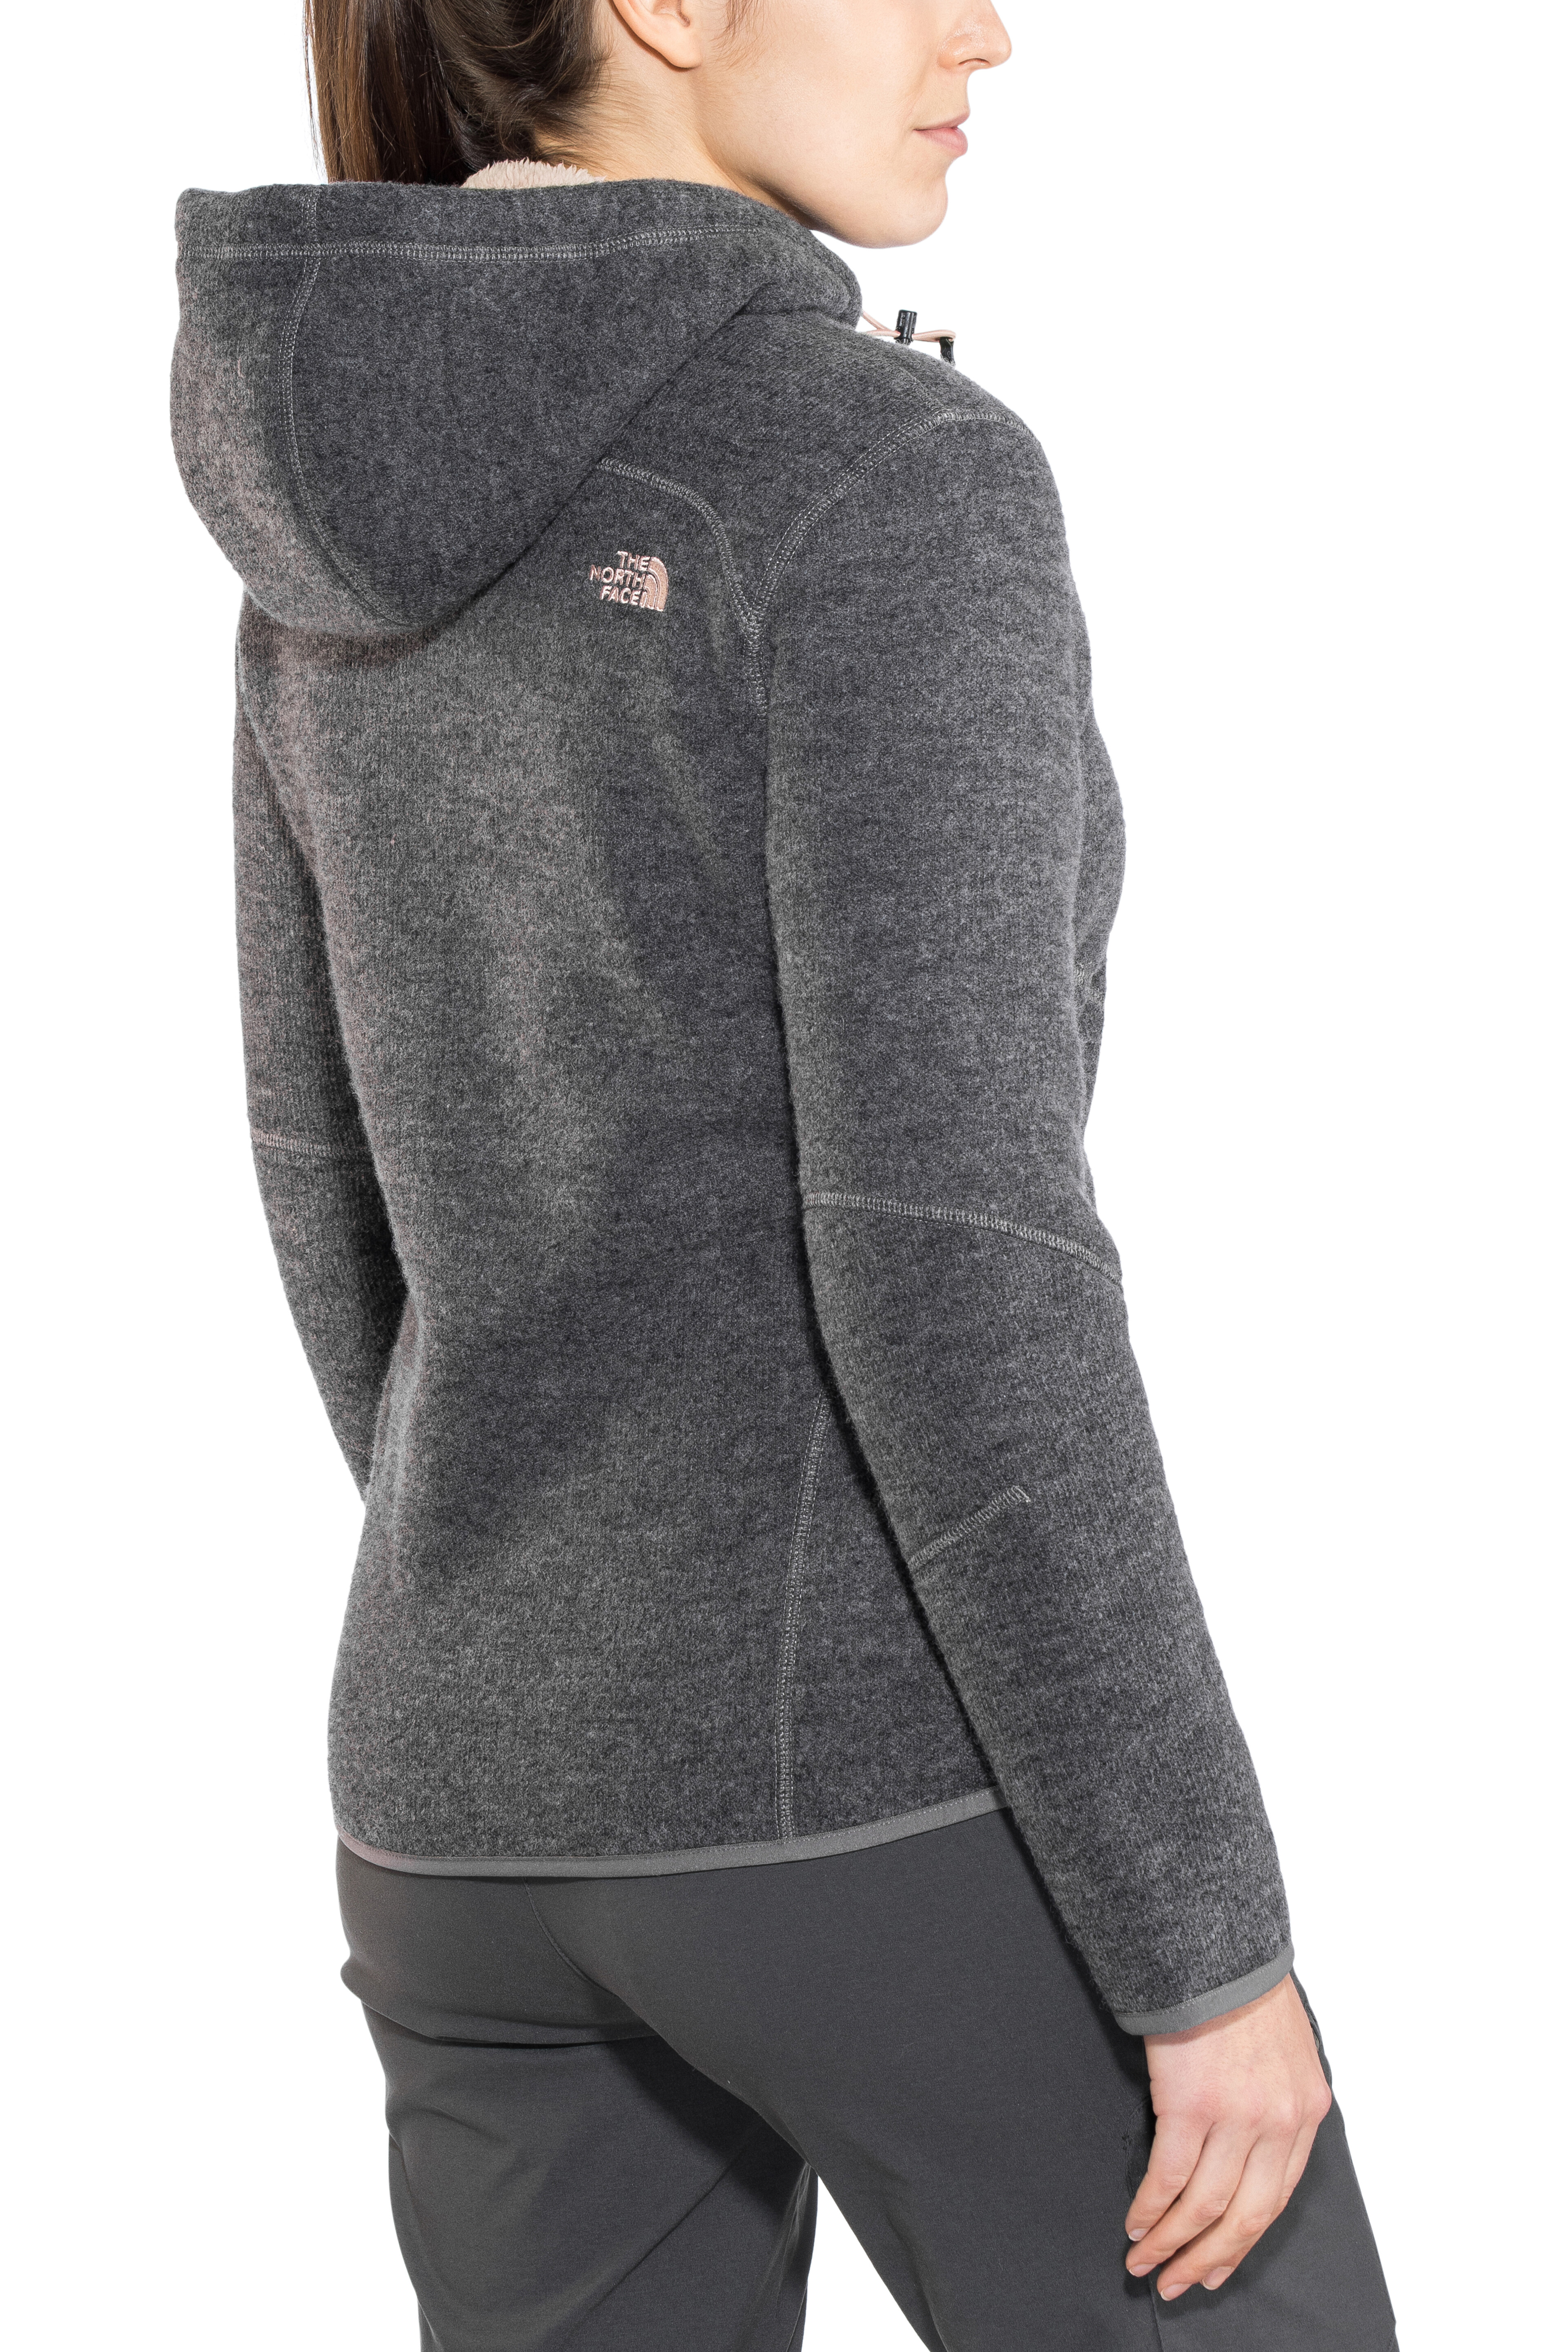 The North Face Zermatt Giacca Donna grigio e48a088cd0bf